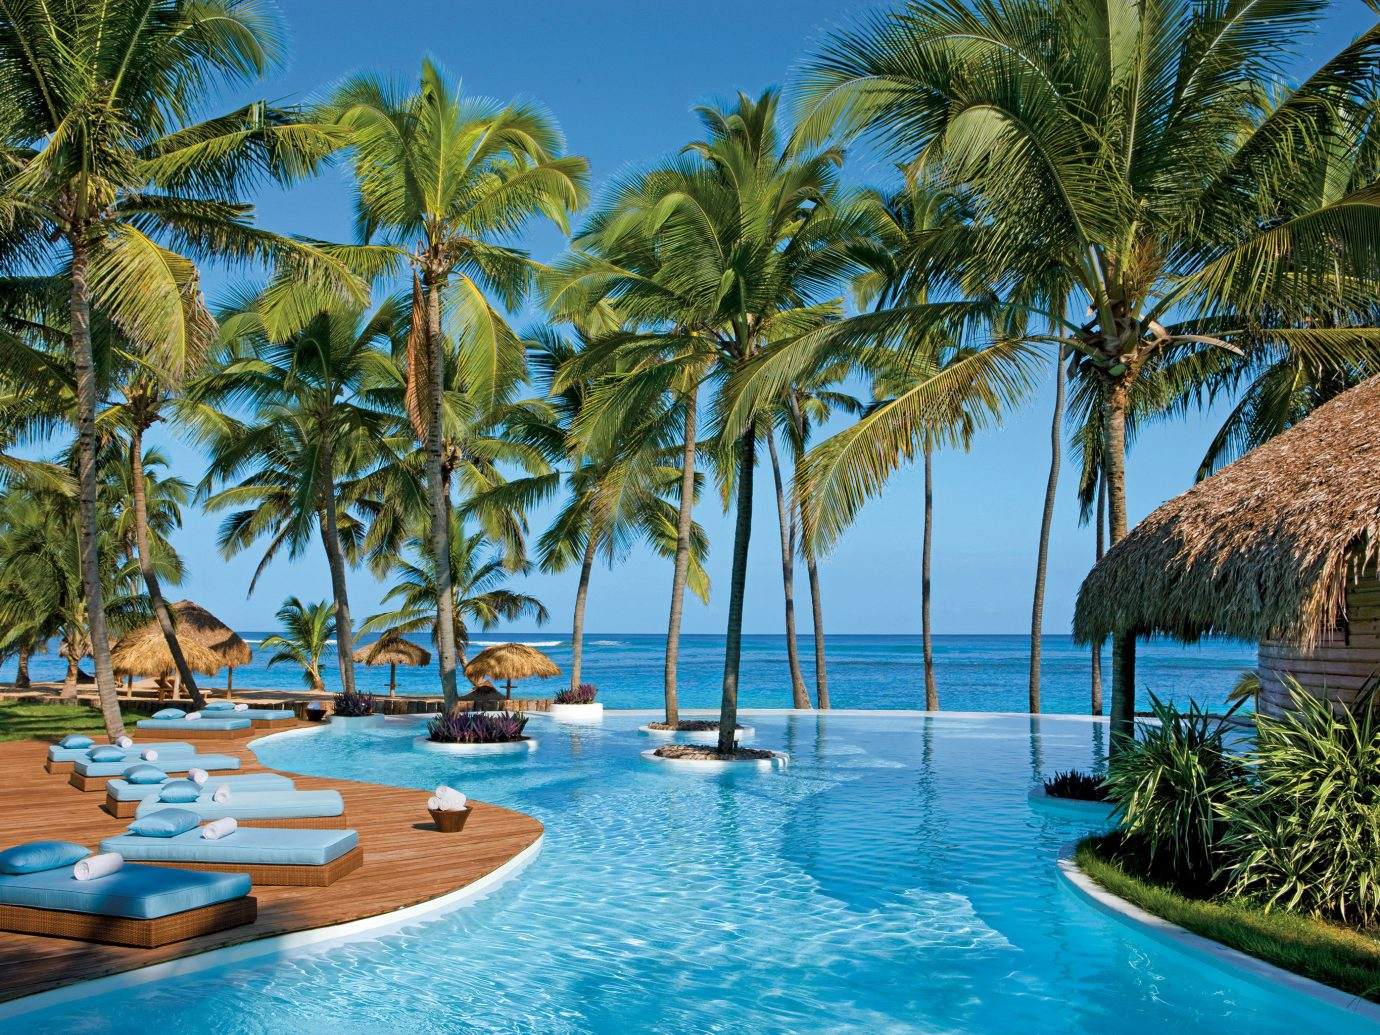 All-inclusive Beach Hotels Luxury Pool Resort Scenic views Waterfront tree outdoor water sky palm swimming pool property caribbean vacation plant estate arecales tropics Sea Lagoon lined palm family bay swimming blue surrounded